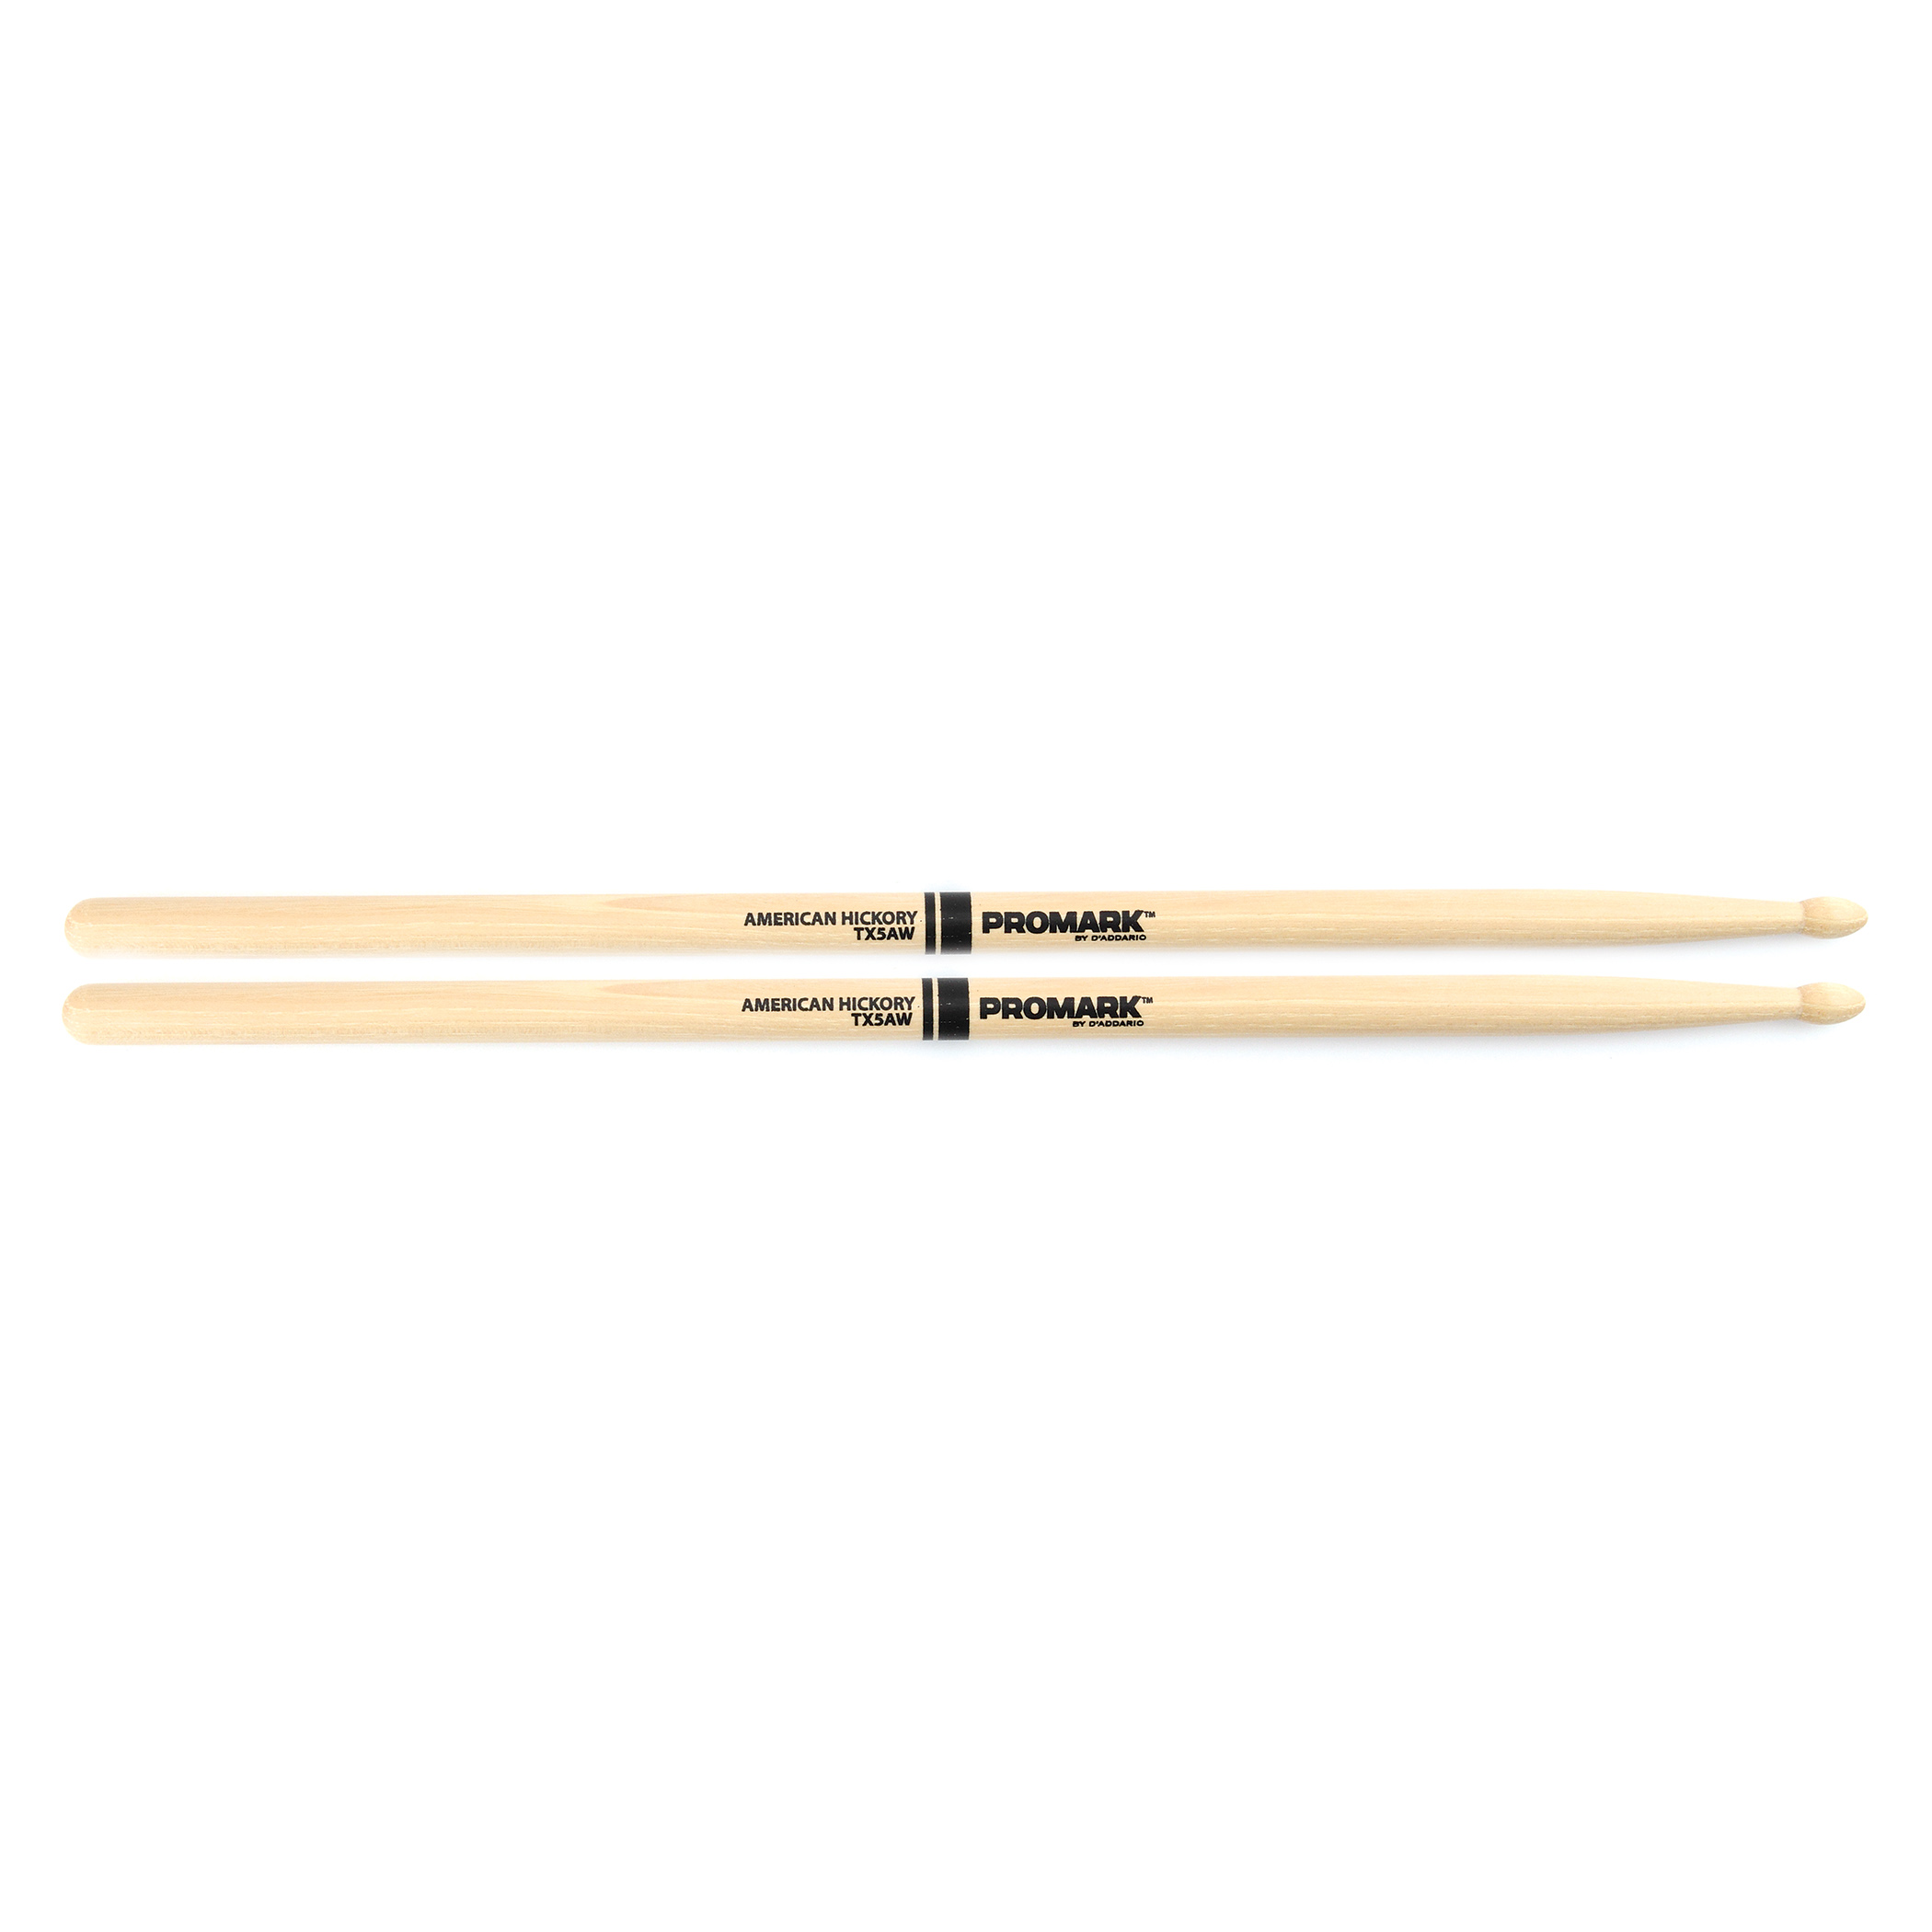 HICKORY 5A WOOD TIP